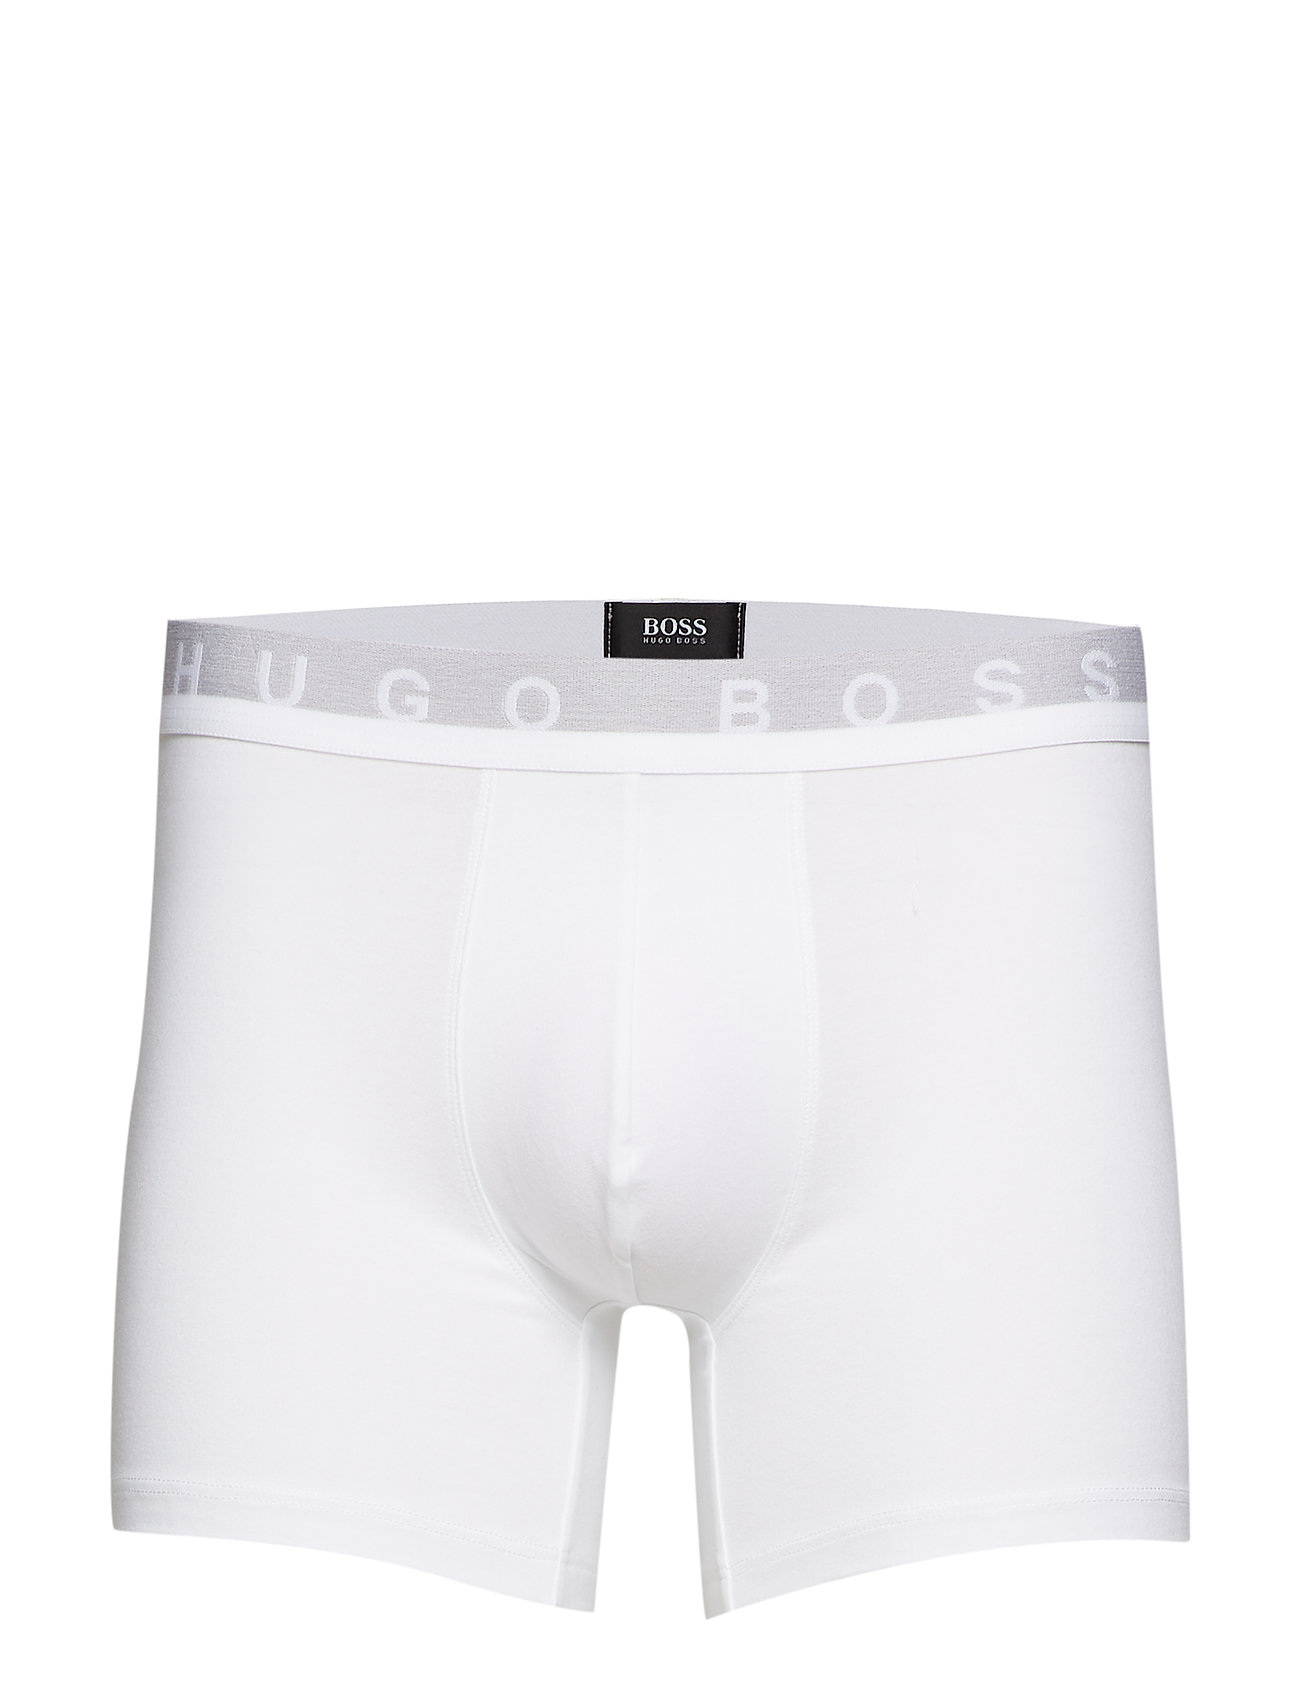 BOSS Business Wear Boxer Brief Motion - WHITE